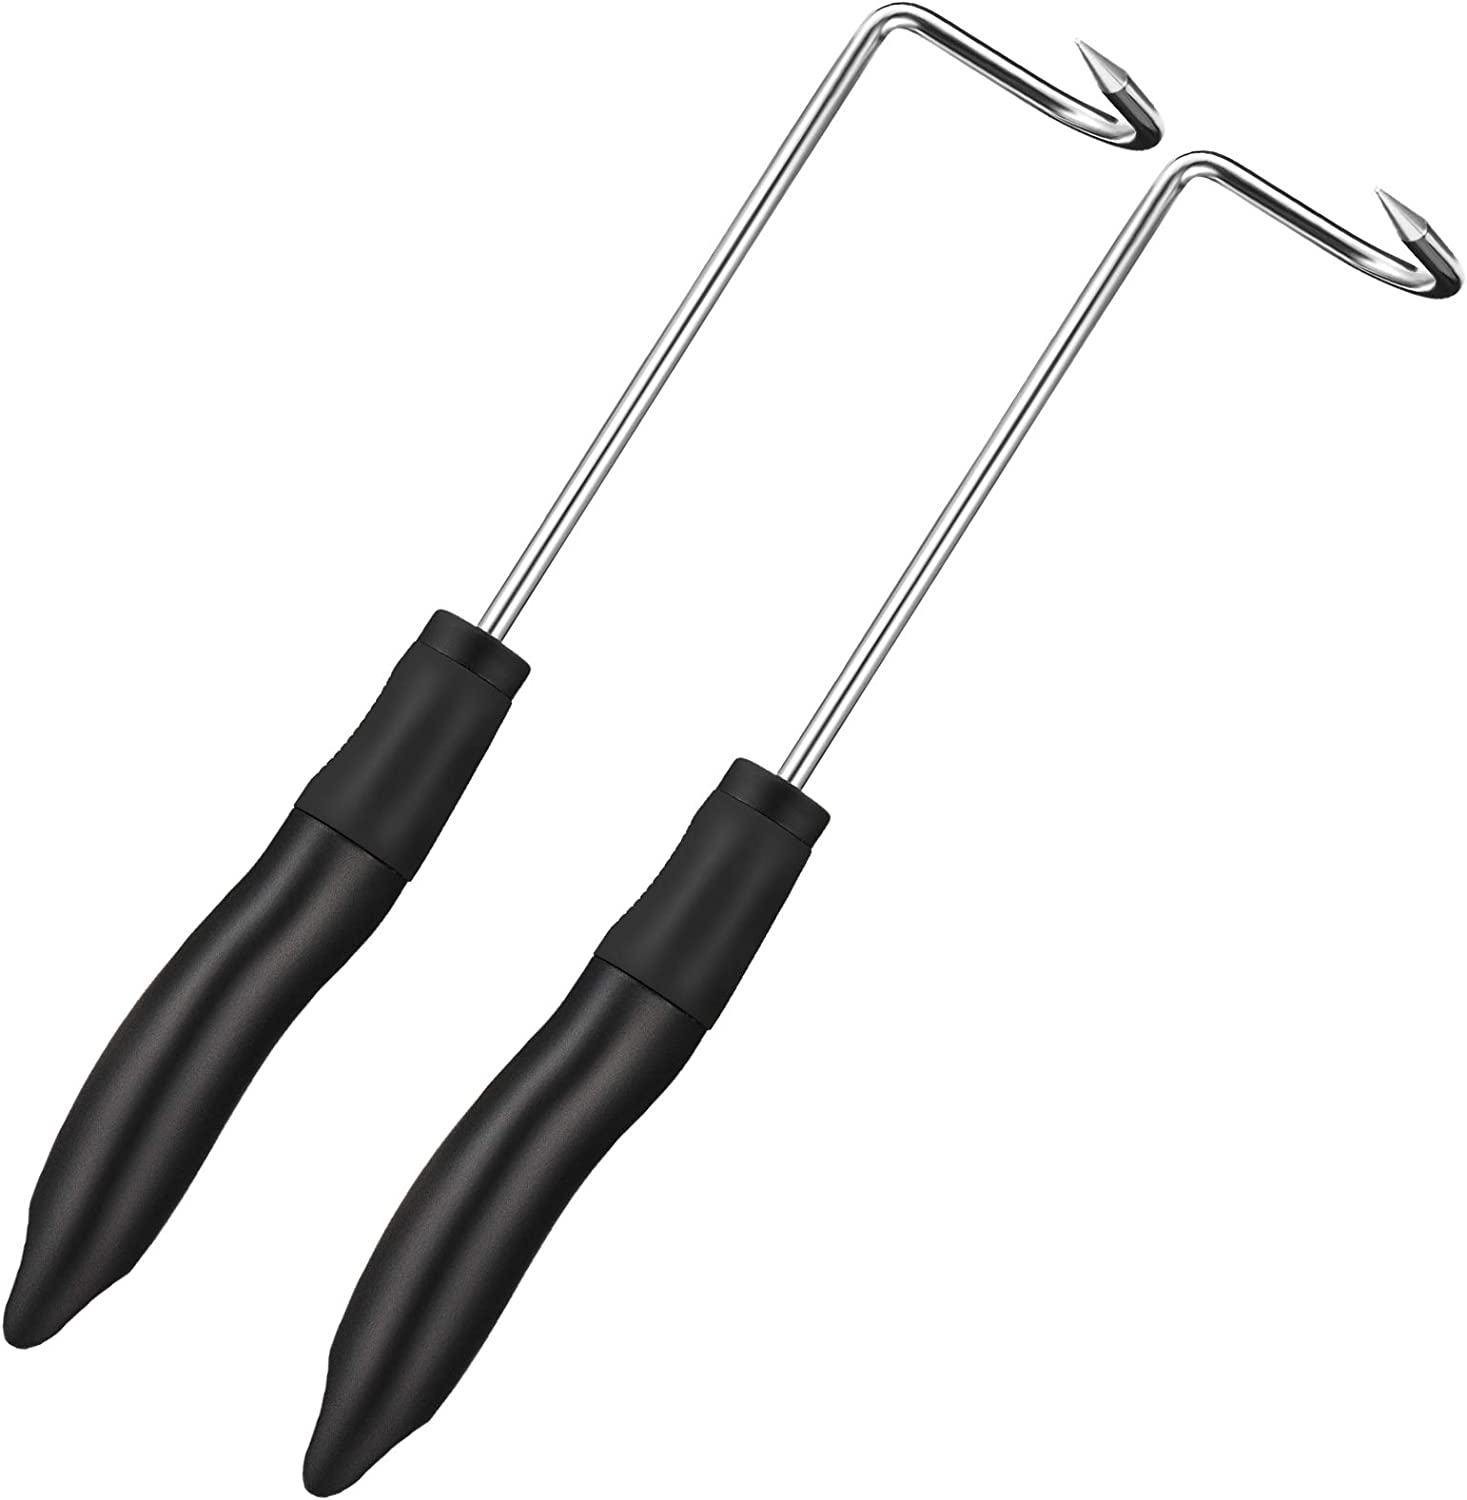 2 Pieces Grilling Tool Tail Food Flippers for Grill or Kitchen 12 Inch Short Size BBQ Turner Hook Flips for Meat Vegetables Steak or Fish Dishwasher Safe Flipper Hooks